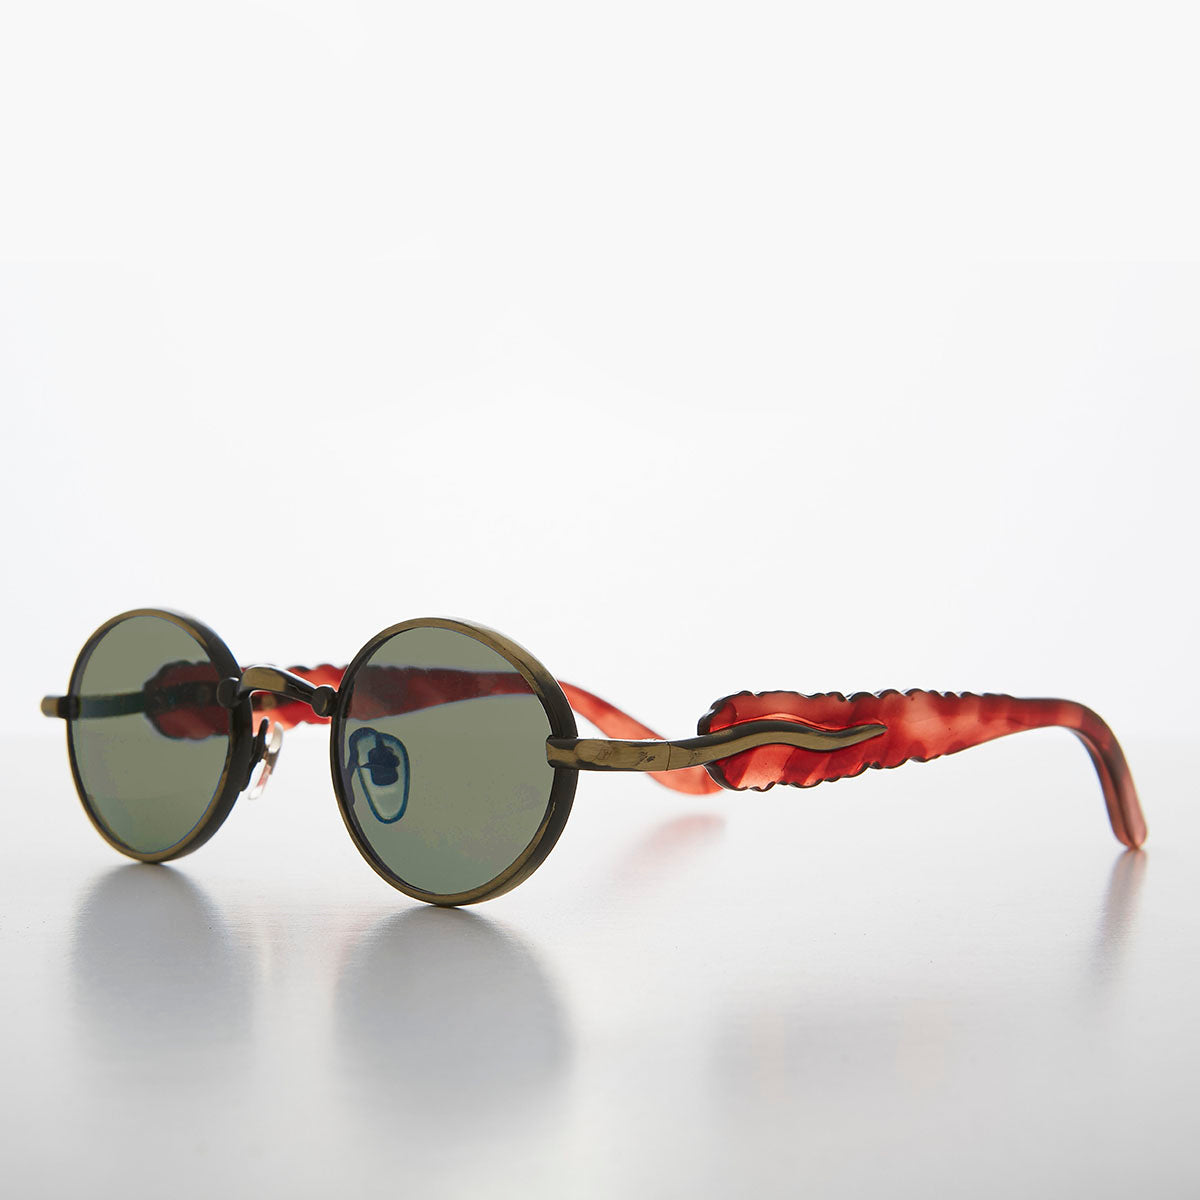 Unique 90s Oval Lens  Vintage Sunglass Jagged Temple Design